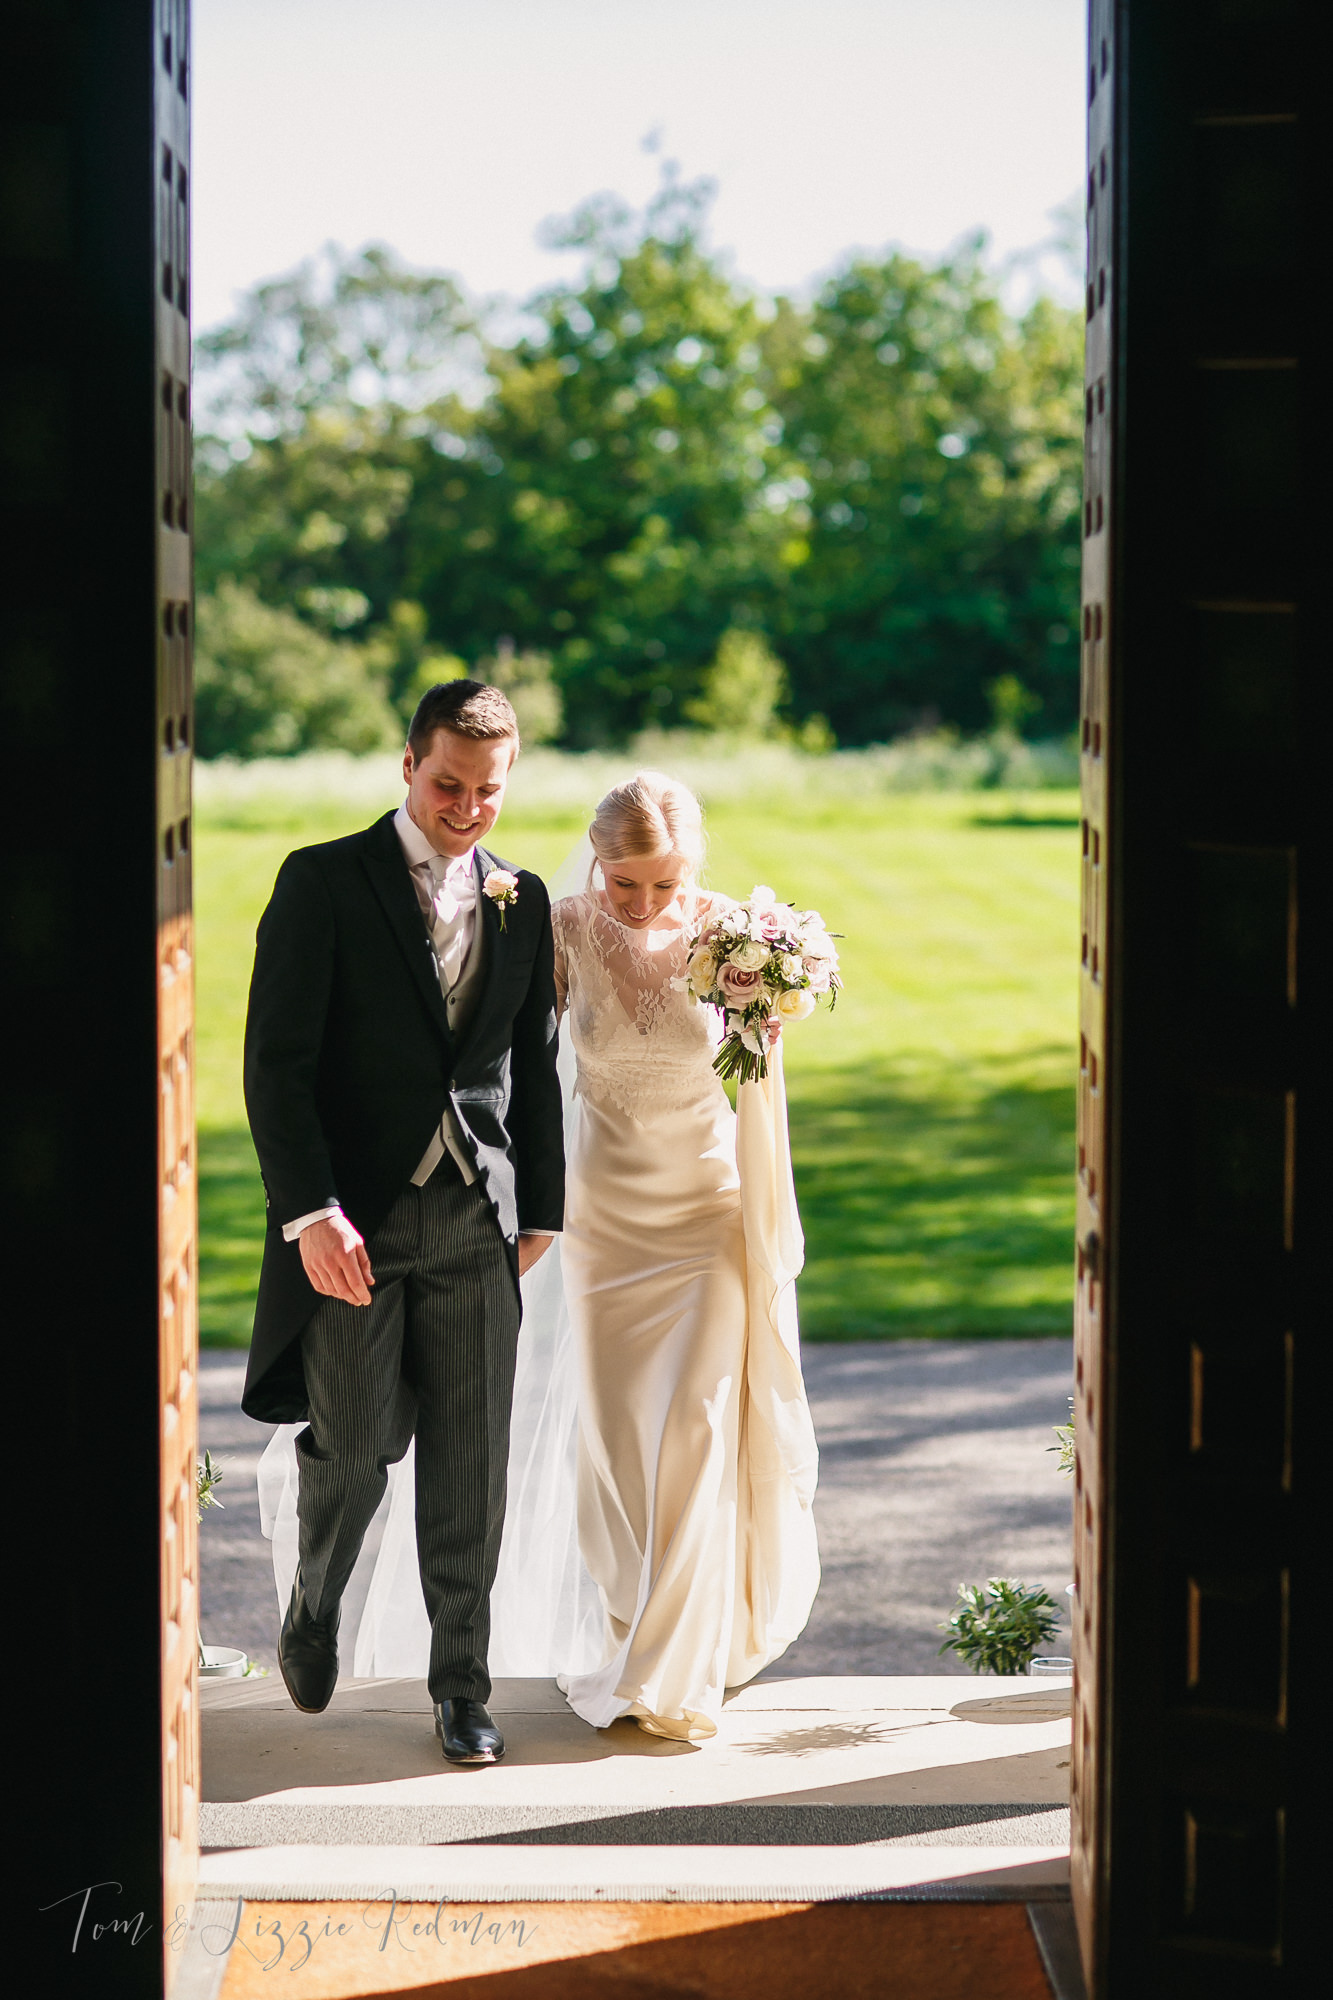 Dorset wedding photographers Tom & Lizzie Redman 041.jpg